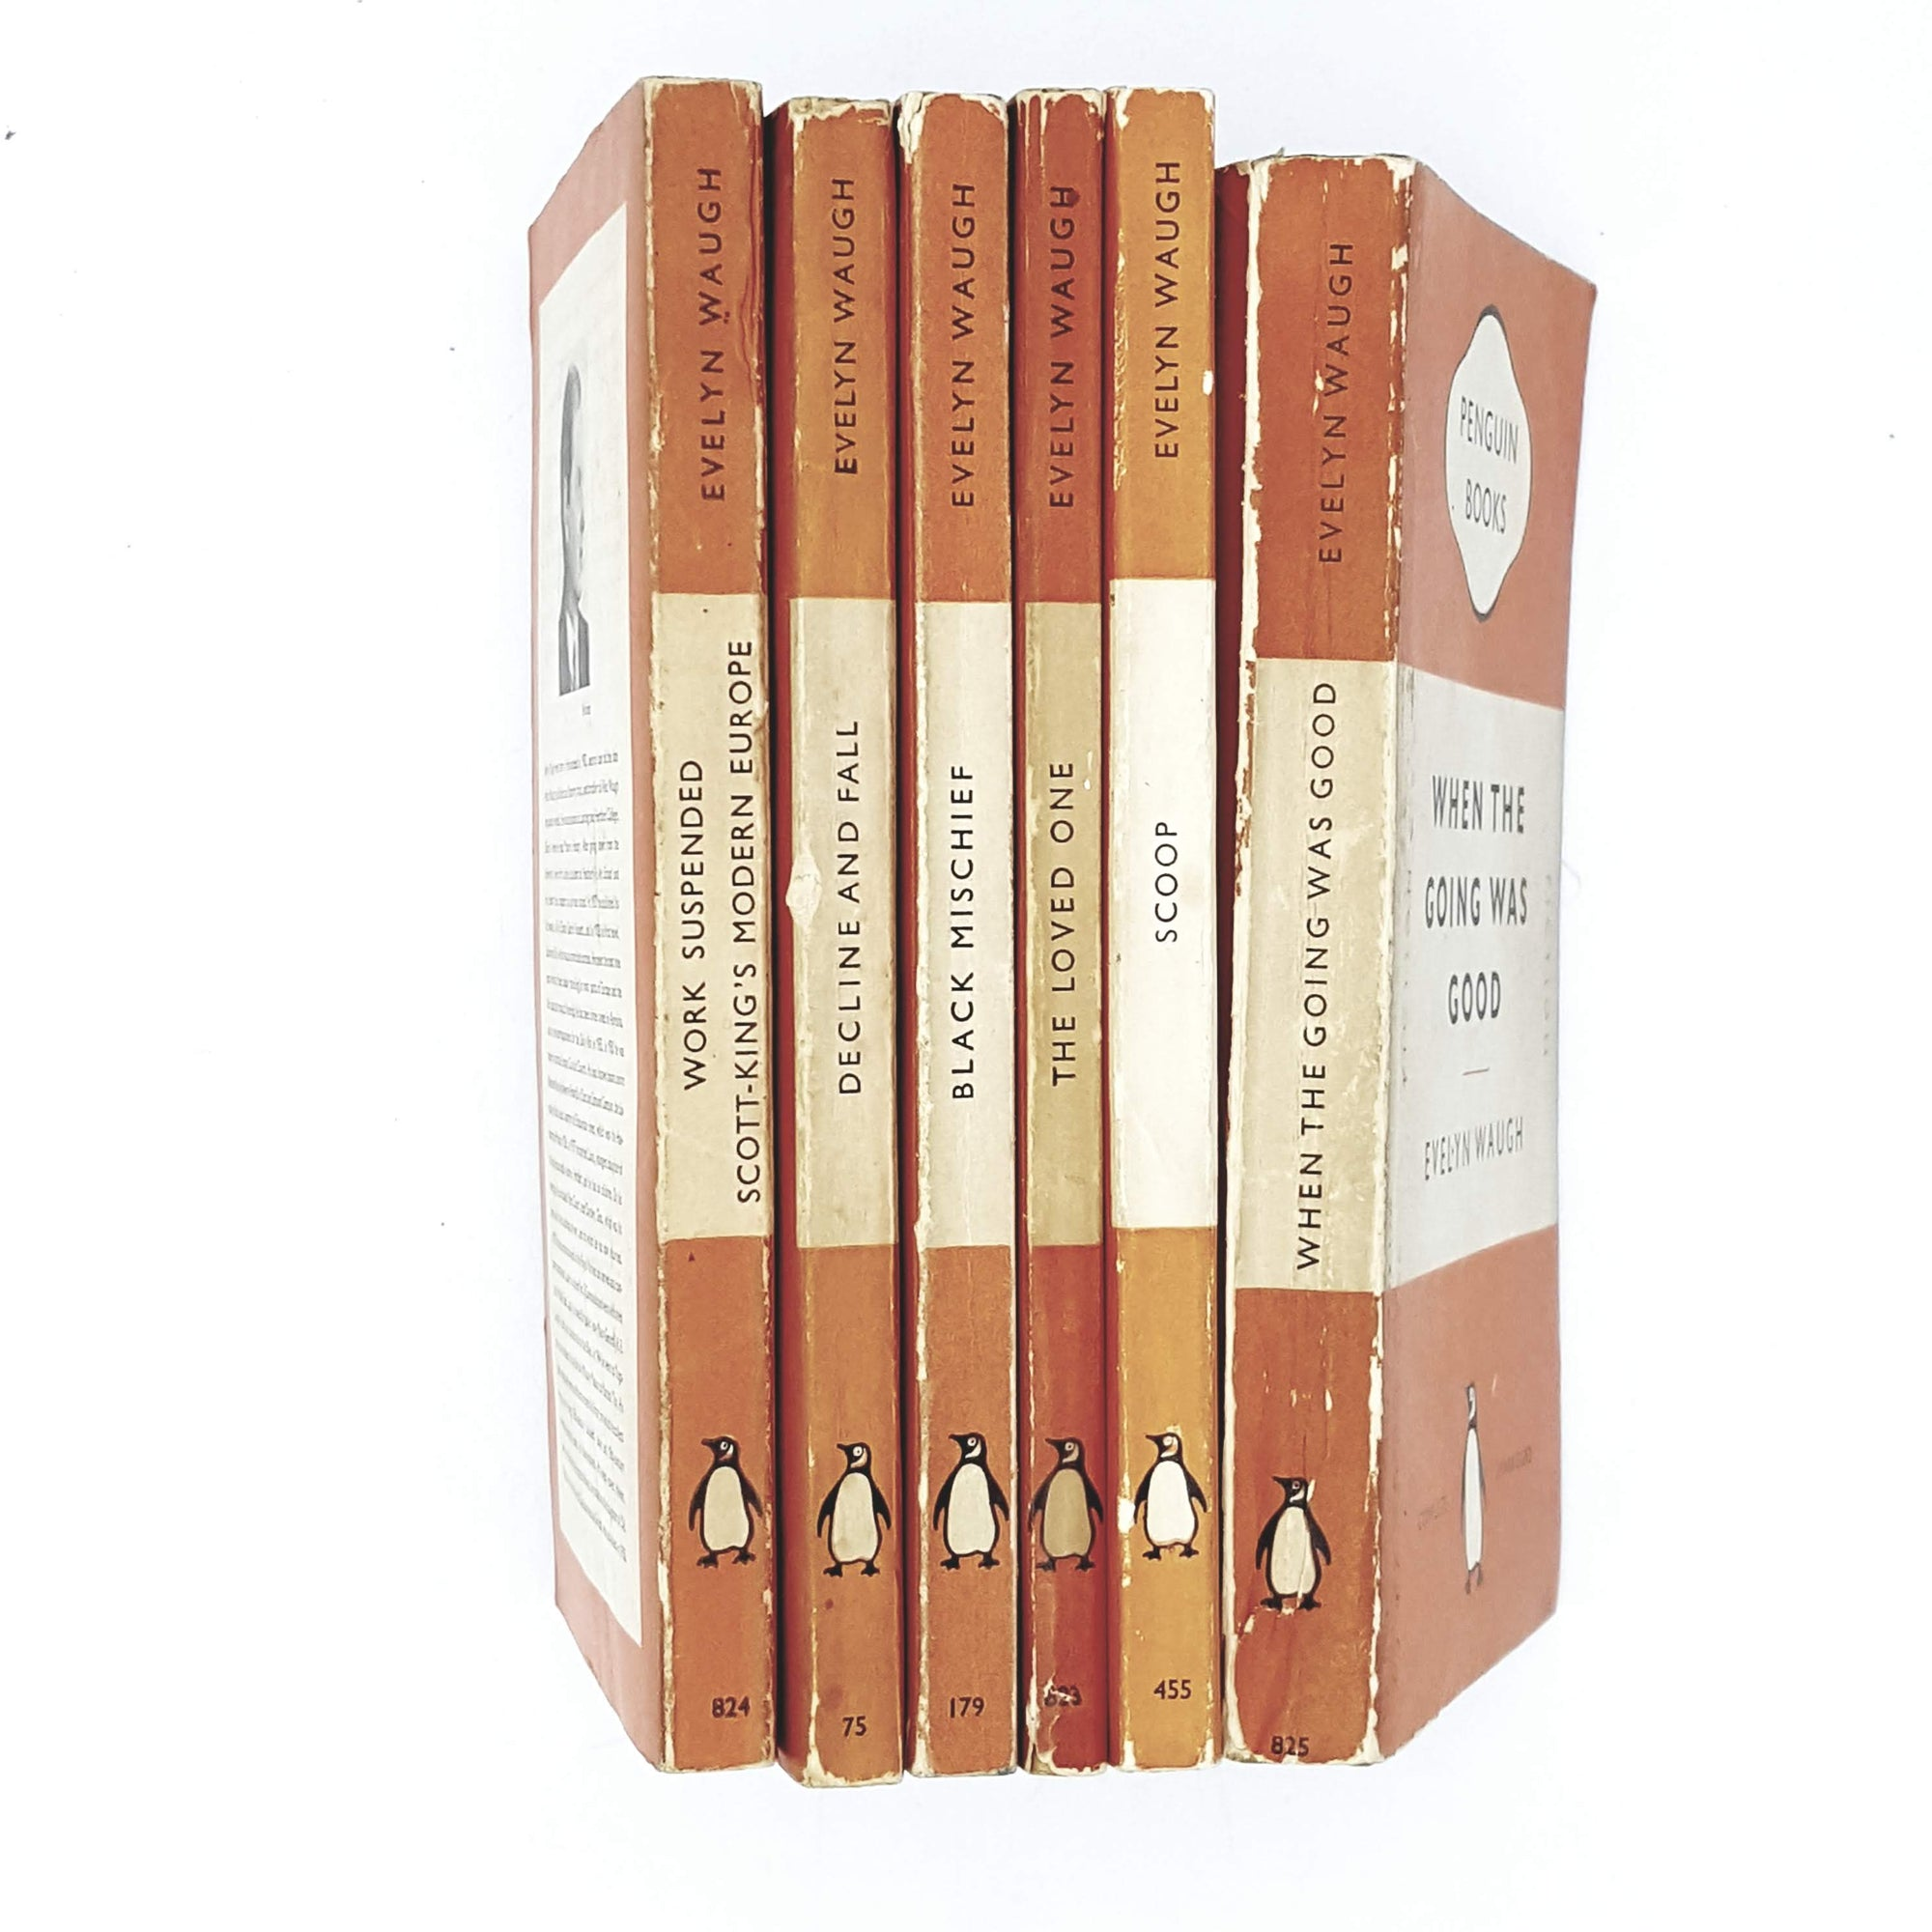 Collection Evelyn Waugh Orange Penguins 1951 - 1954